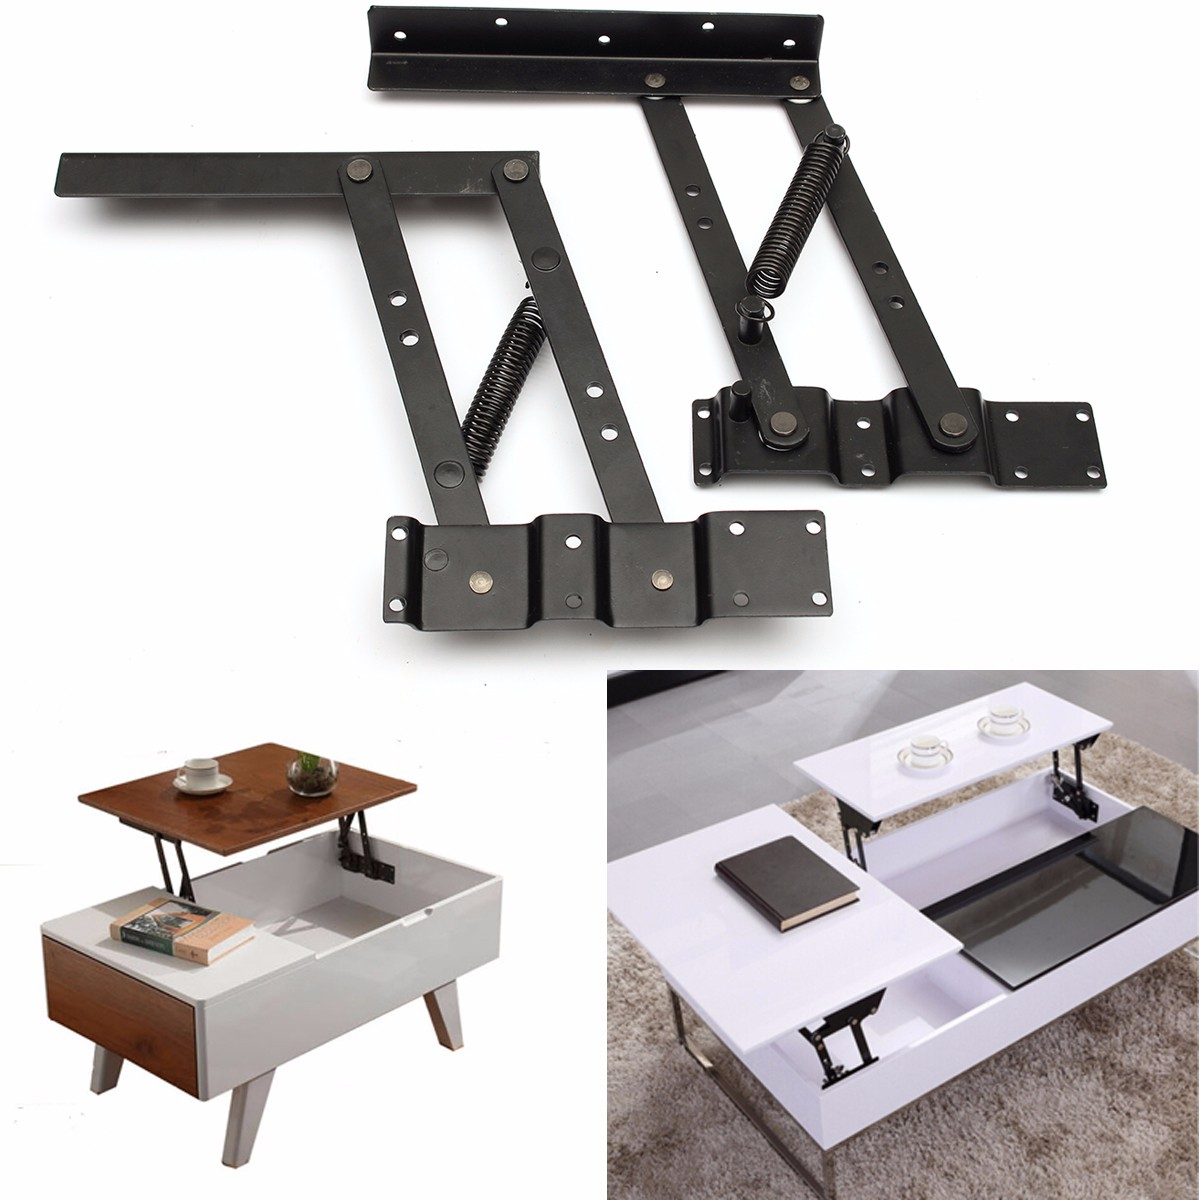 2pcs lift up top coffee table lifting frame mechanism spring